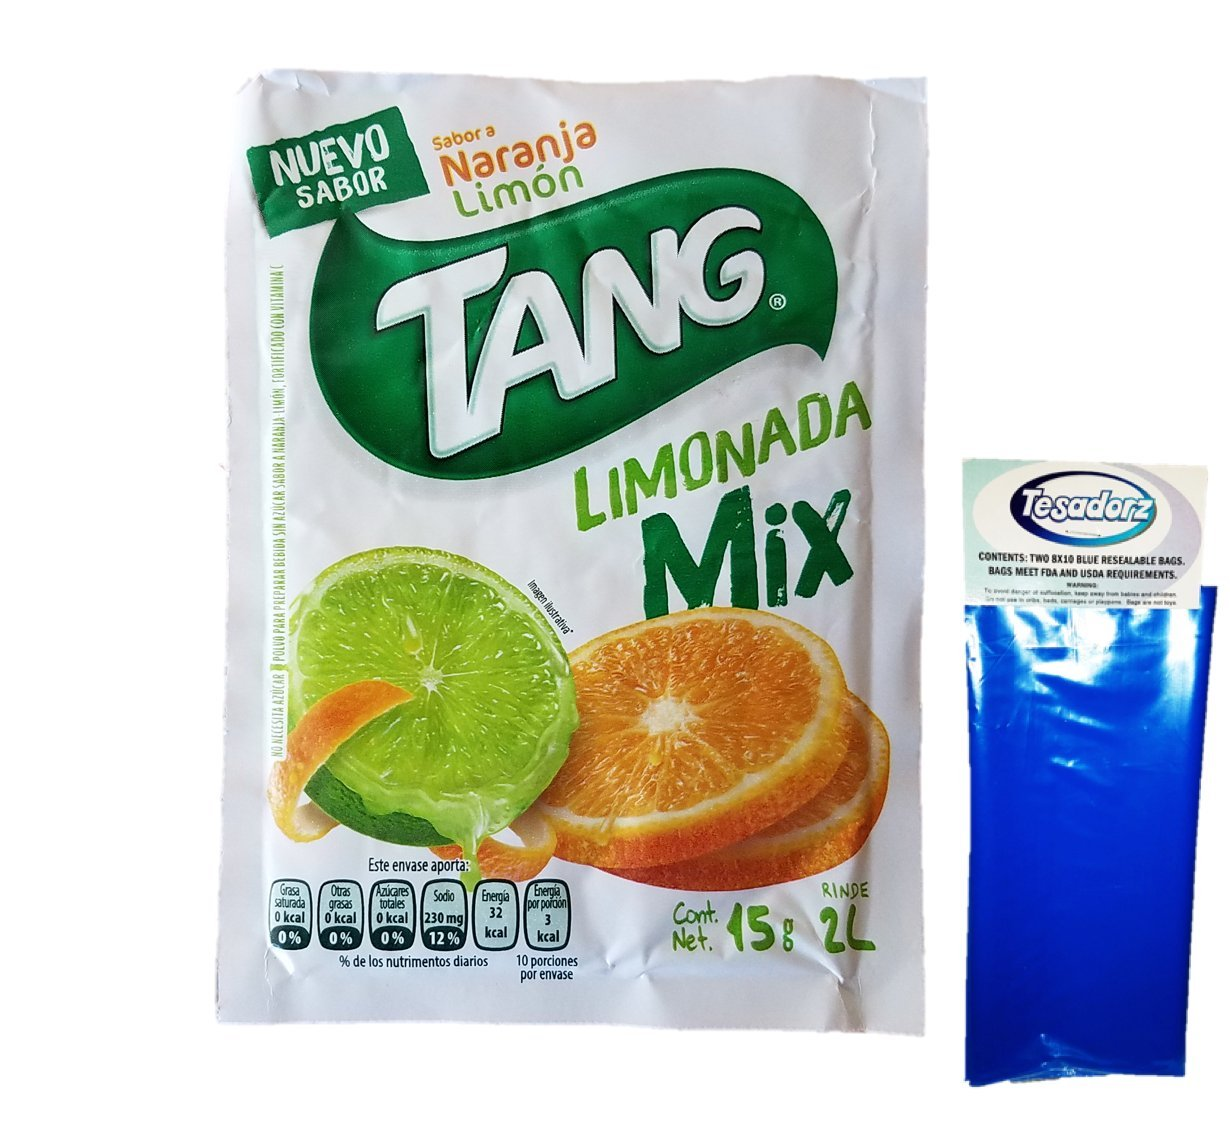 Amazon.com : Tang Naranja and Limon Limonada Drink Mix (Pack of 18) with Tesadorz Resealable Bags : Grocery & Gourmet Food